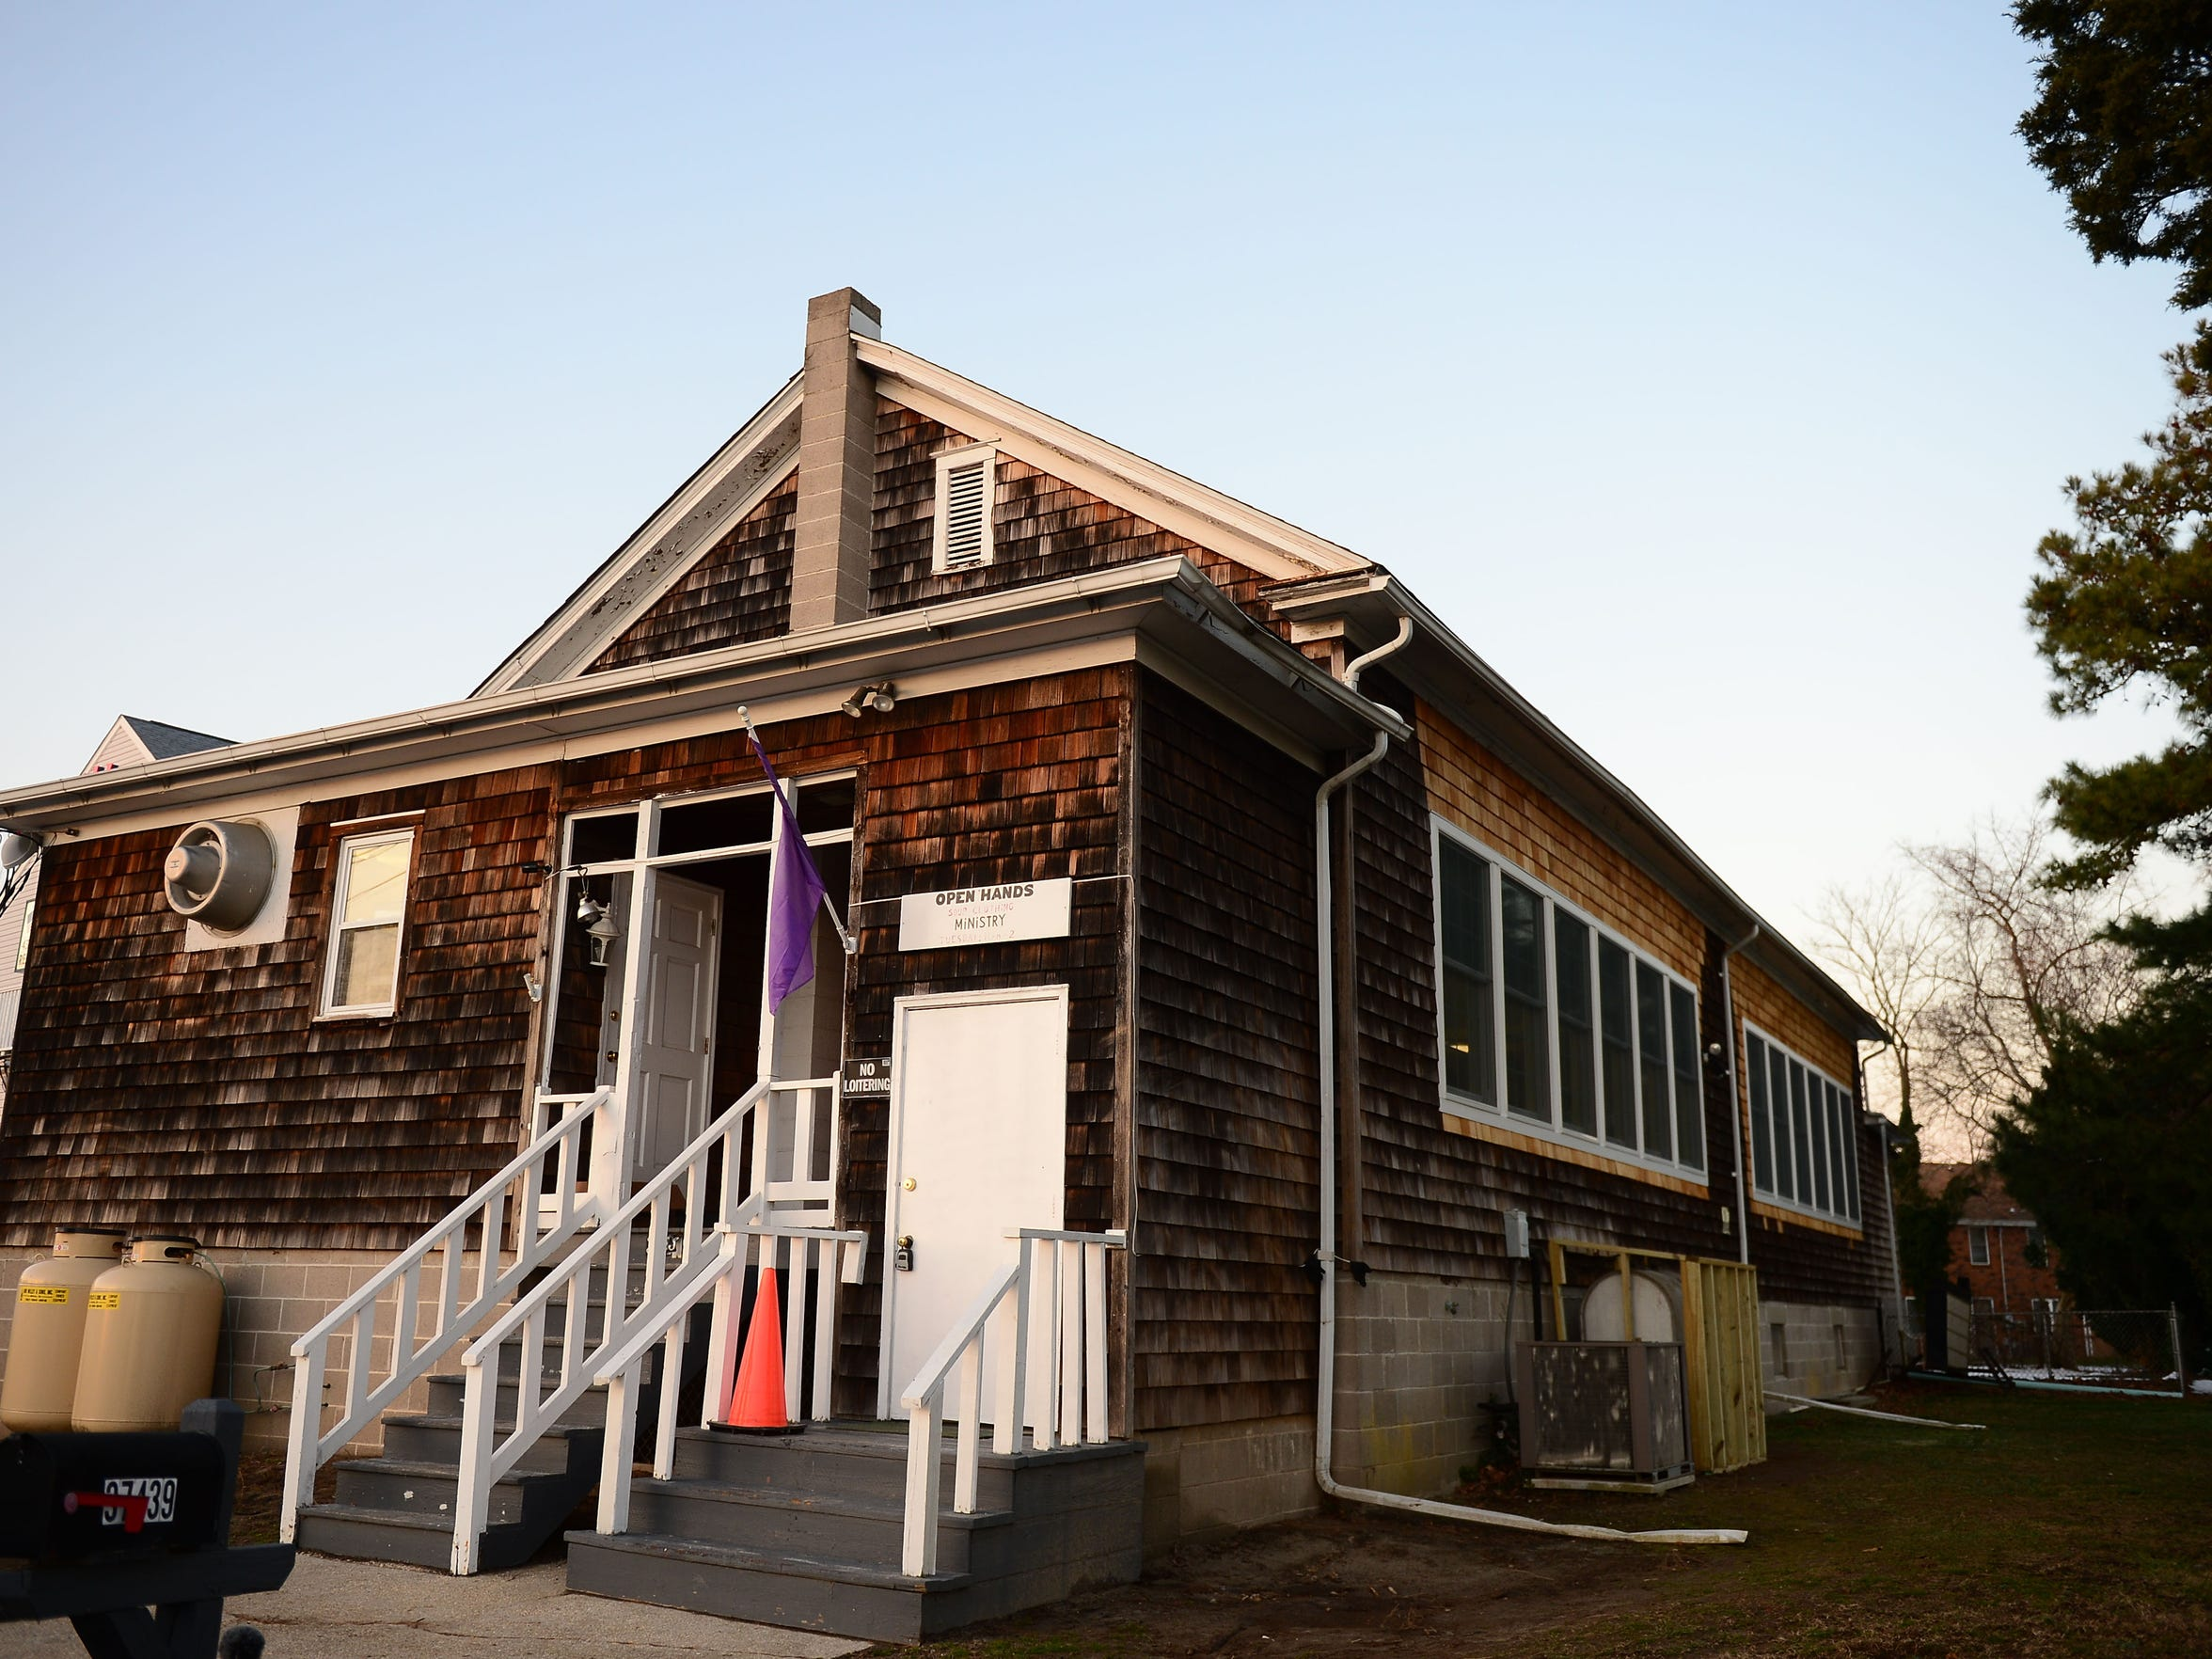 The Immanuel Shelter is located in Rehoboth Beach and provide winter shelter to those experiencing homelessness in the surrounding areas on Monday, Dec. 11, 2017.